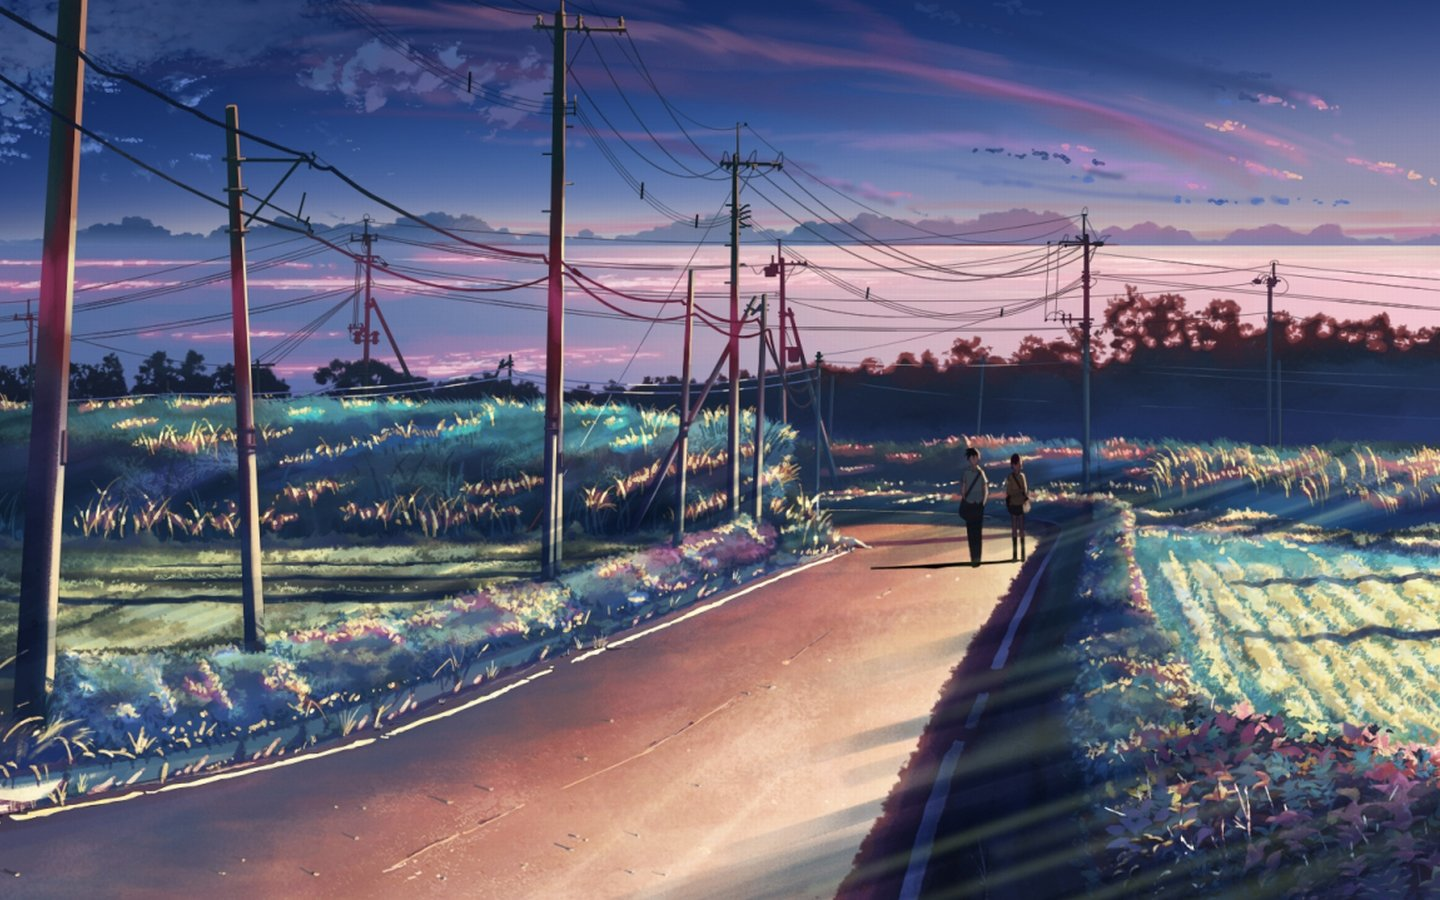 Awesome 5 (cm) Centimeters Per Second free wallpaper ID:90025 for hd 1440x900 desktop